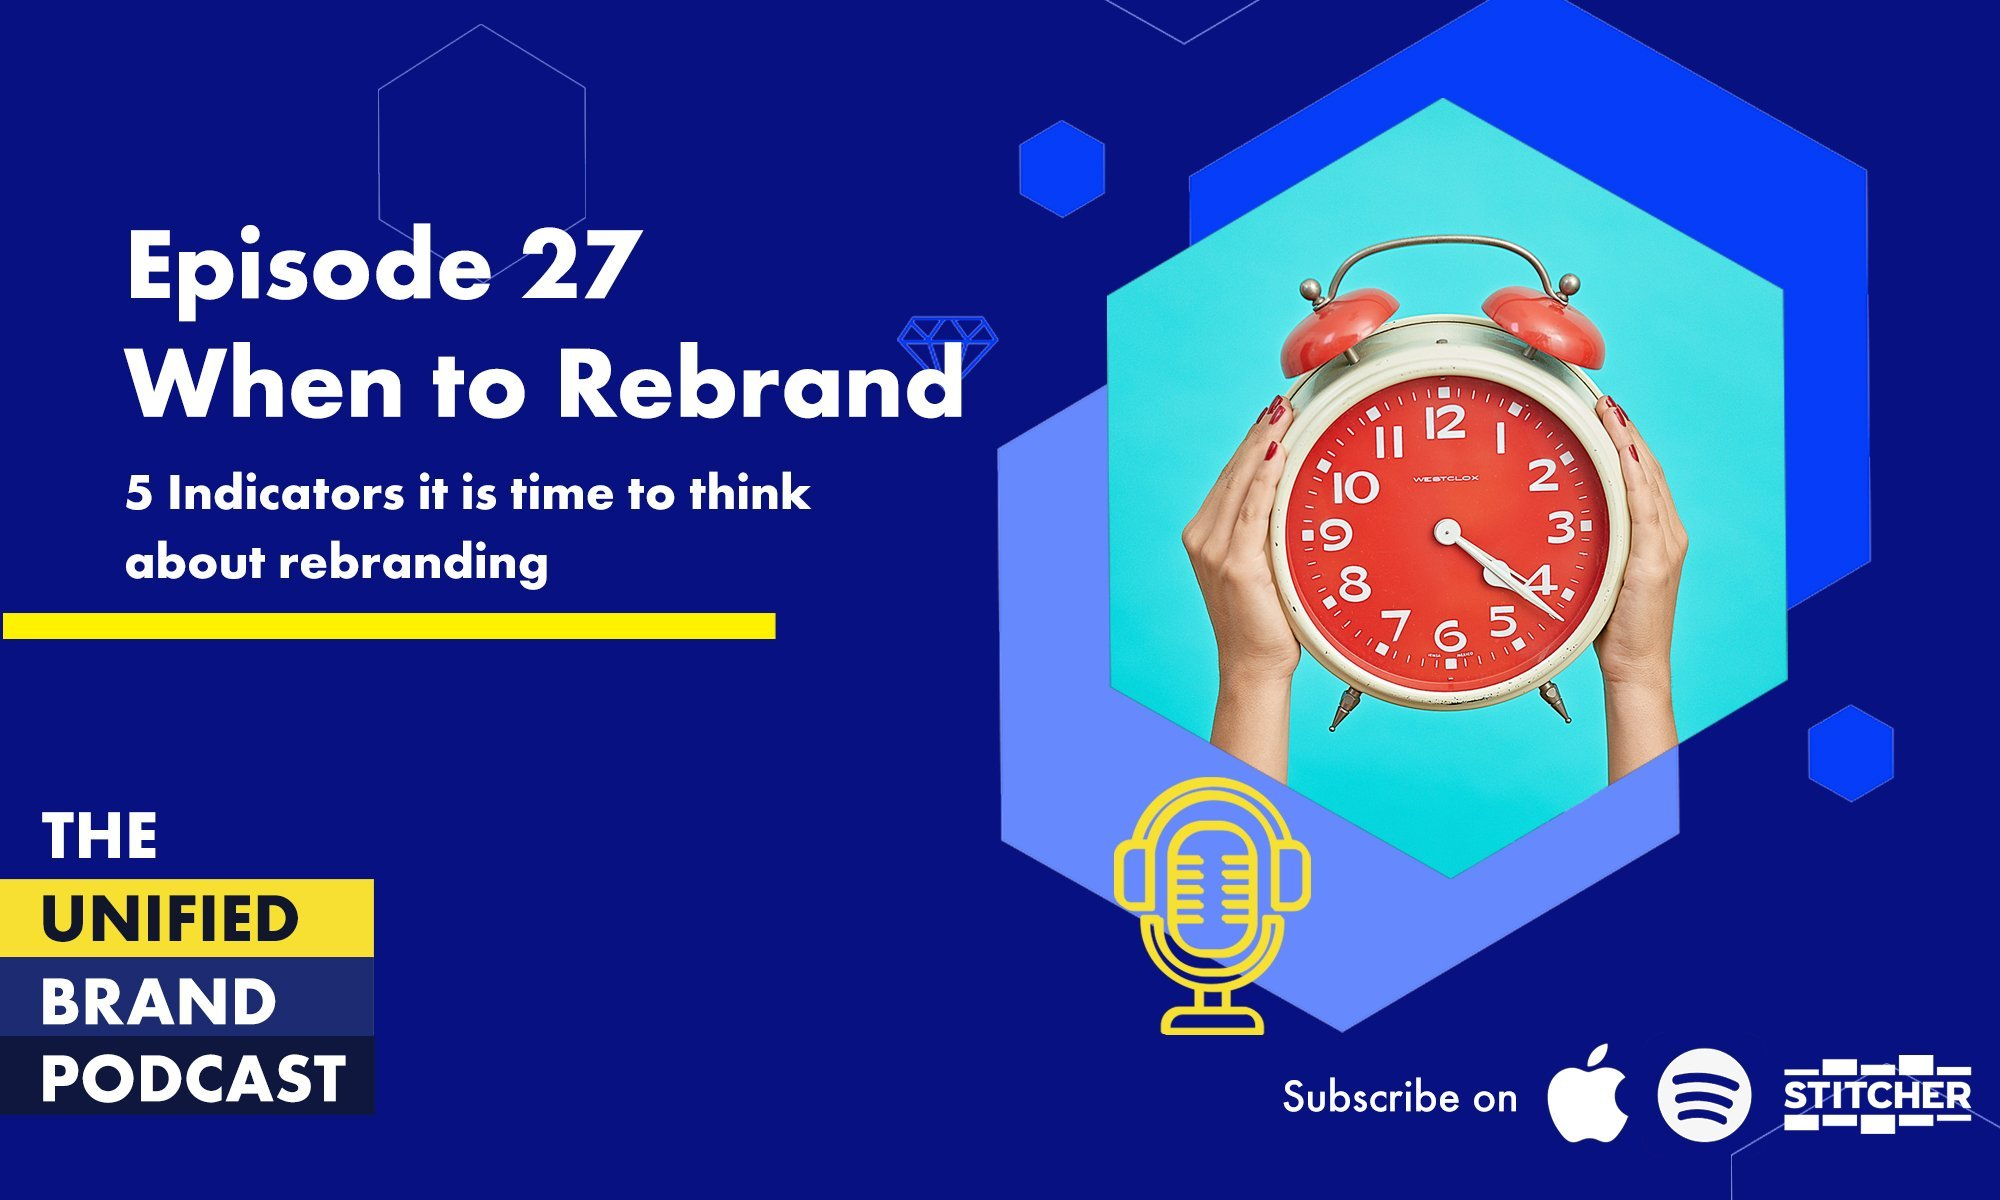 5 Indicators that it is time to think about rebranding your business